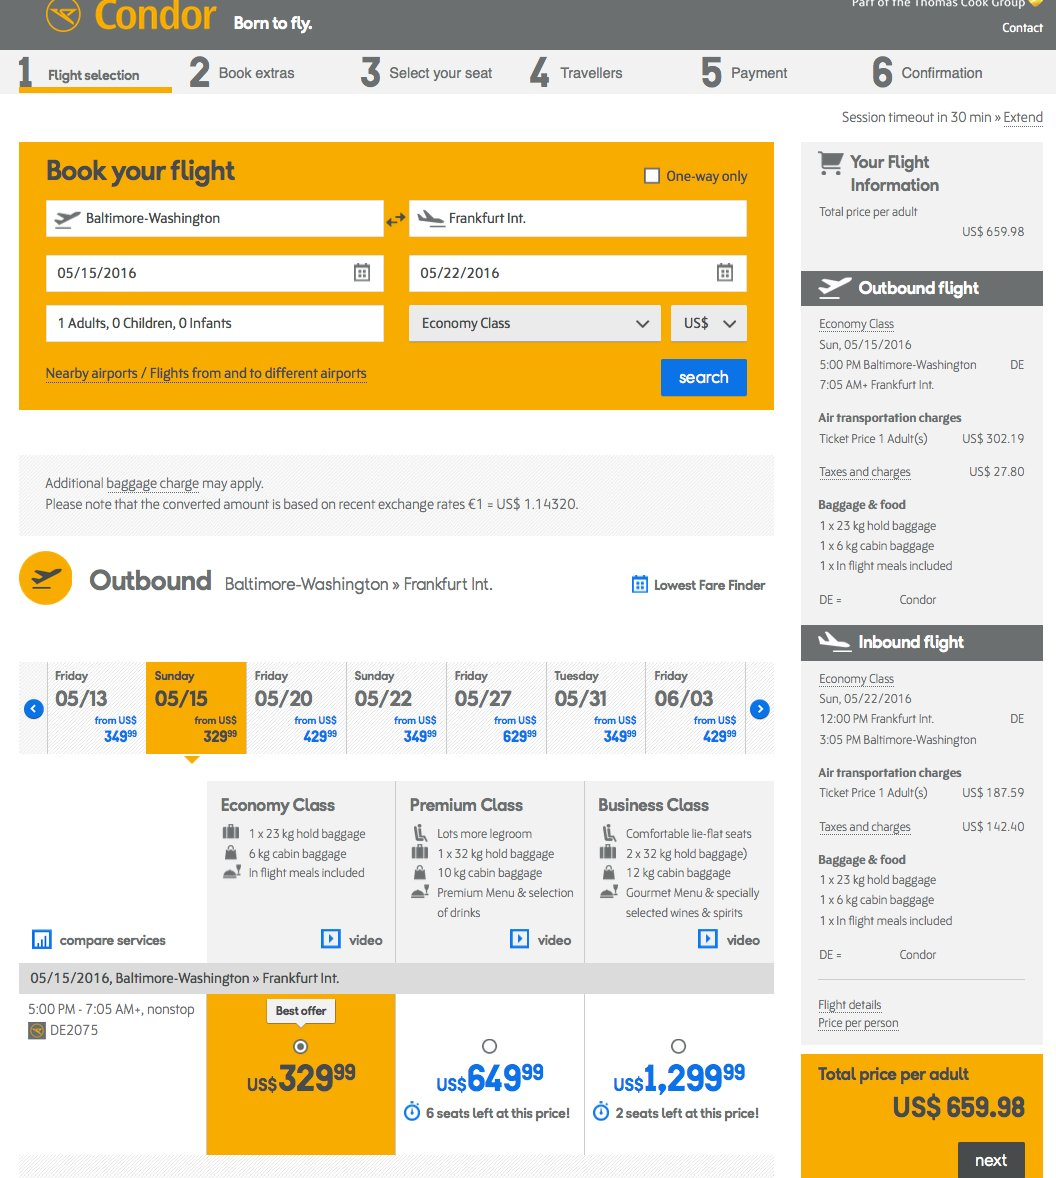 RT @airfarewatchdog: Baltimore BWI to Frankfurt FRA $660 round-trip, nonstop, for May travel